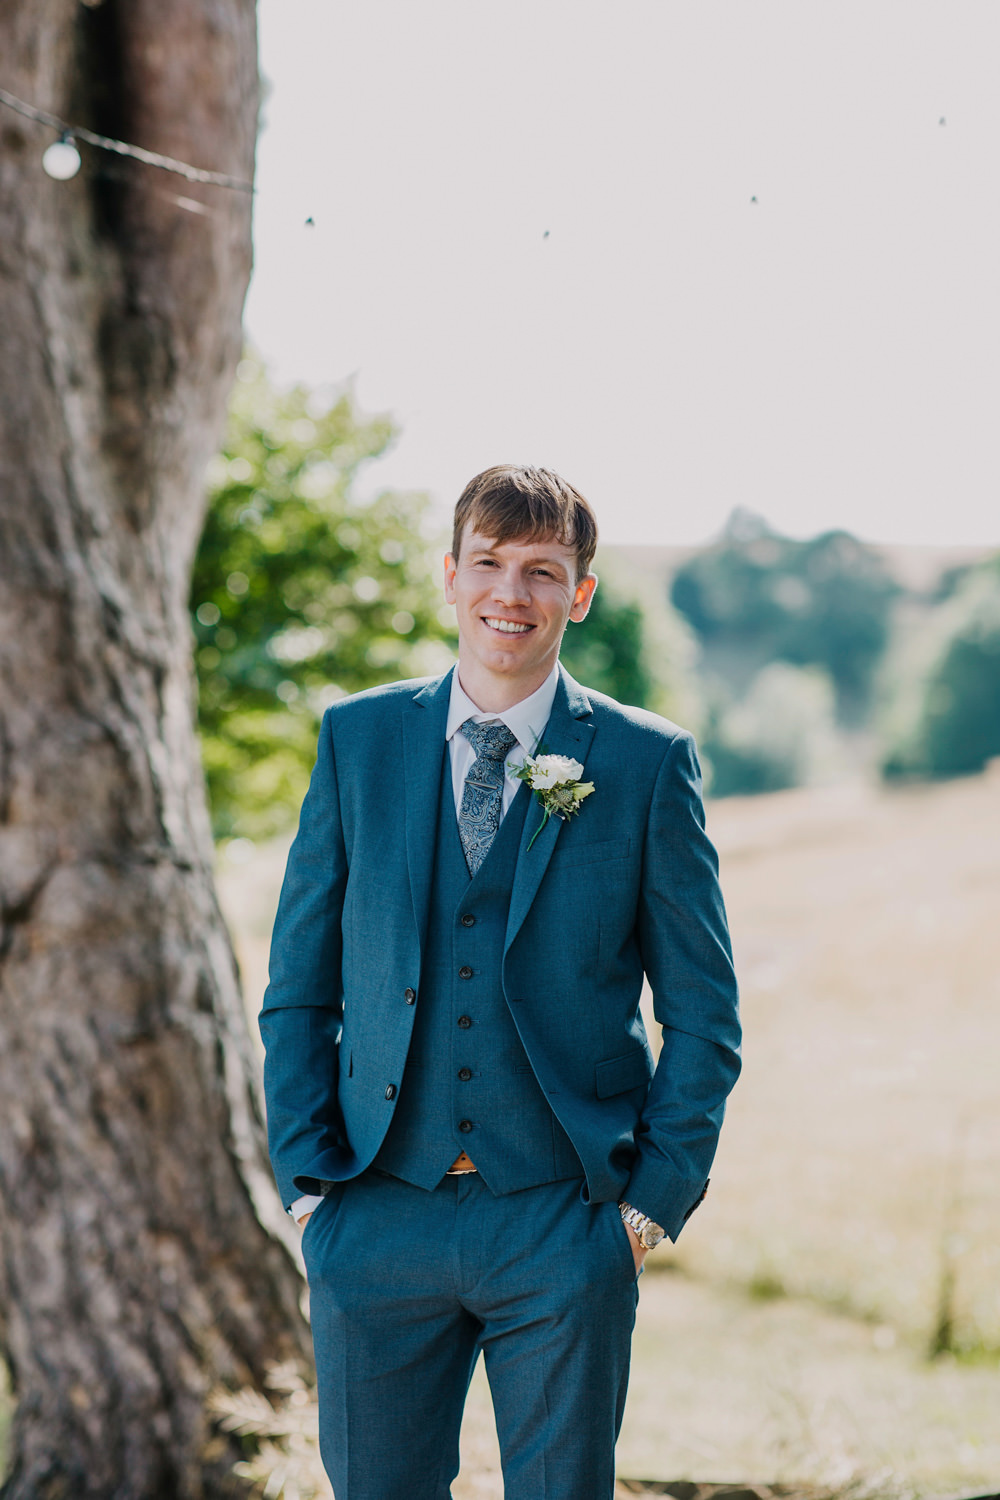 Groom Suit Blue Bohemian Carefree Countryside Wedding Lush Imaging by Naomi